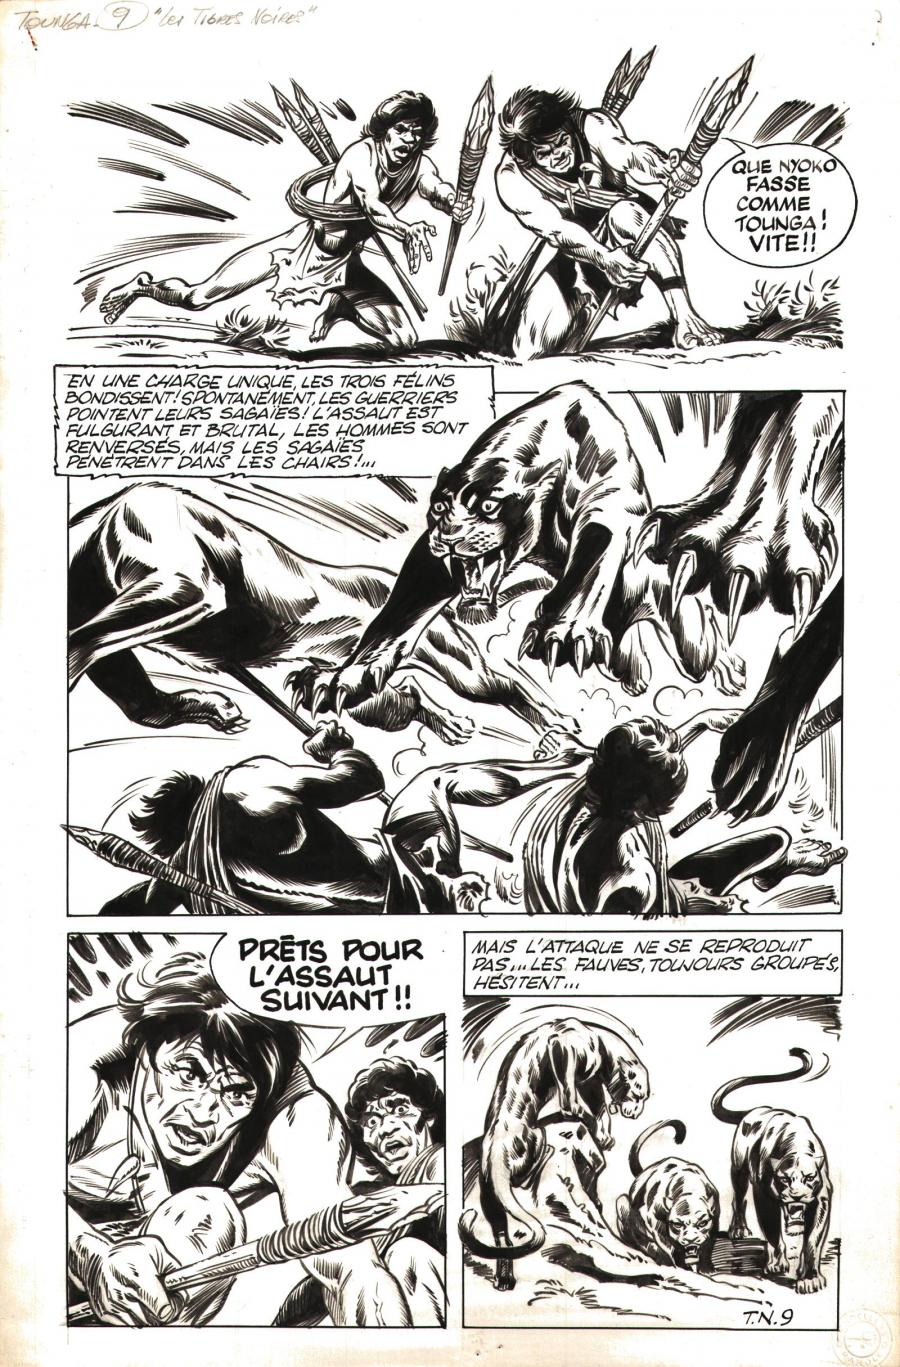 Original comic art 9 of TOUNGA Les tigres noirs by Edouard AIDANS